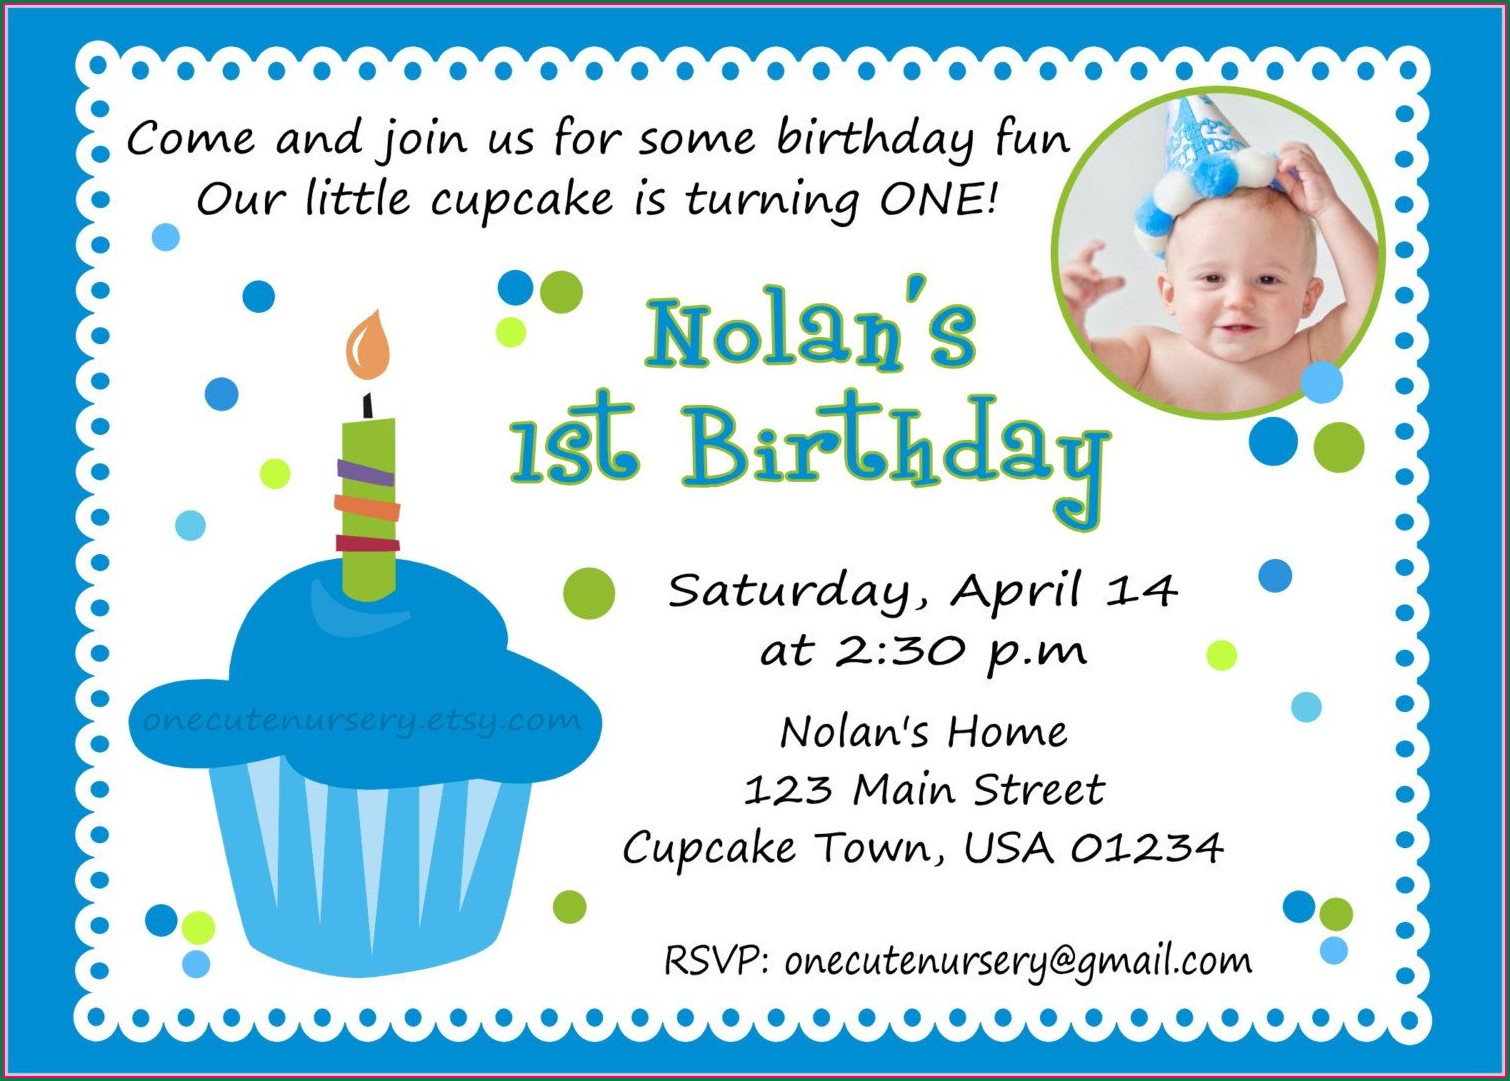 1st Birthday Invitation Message For Boy